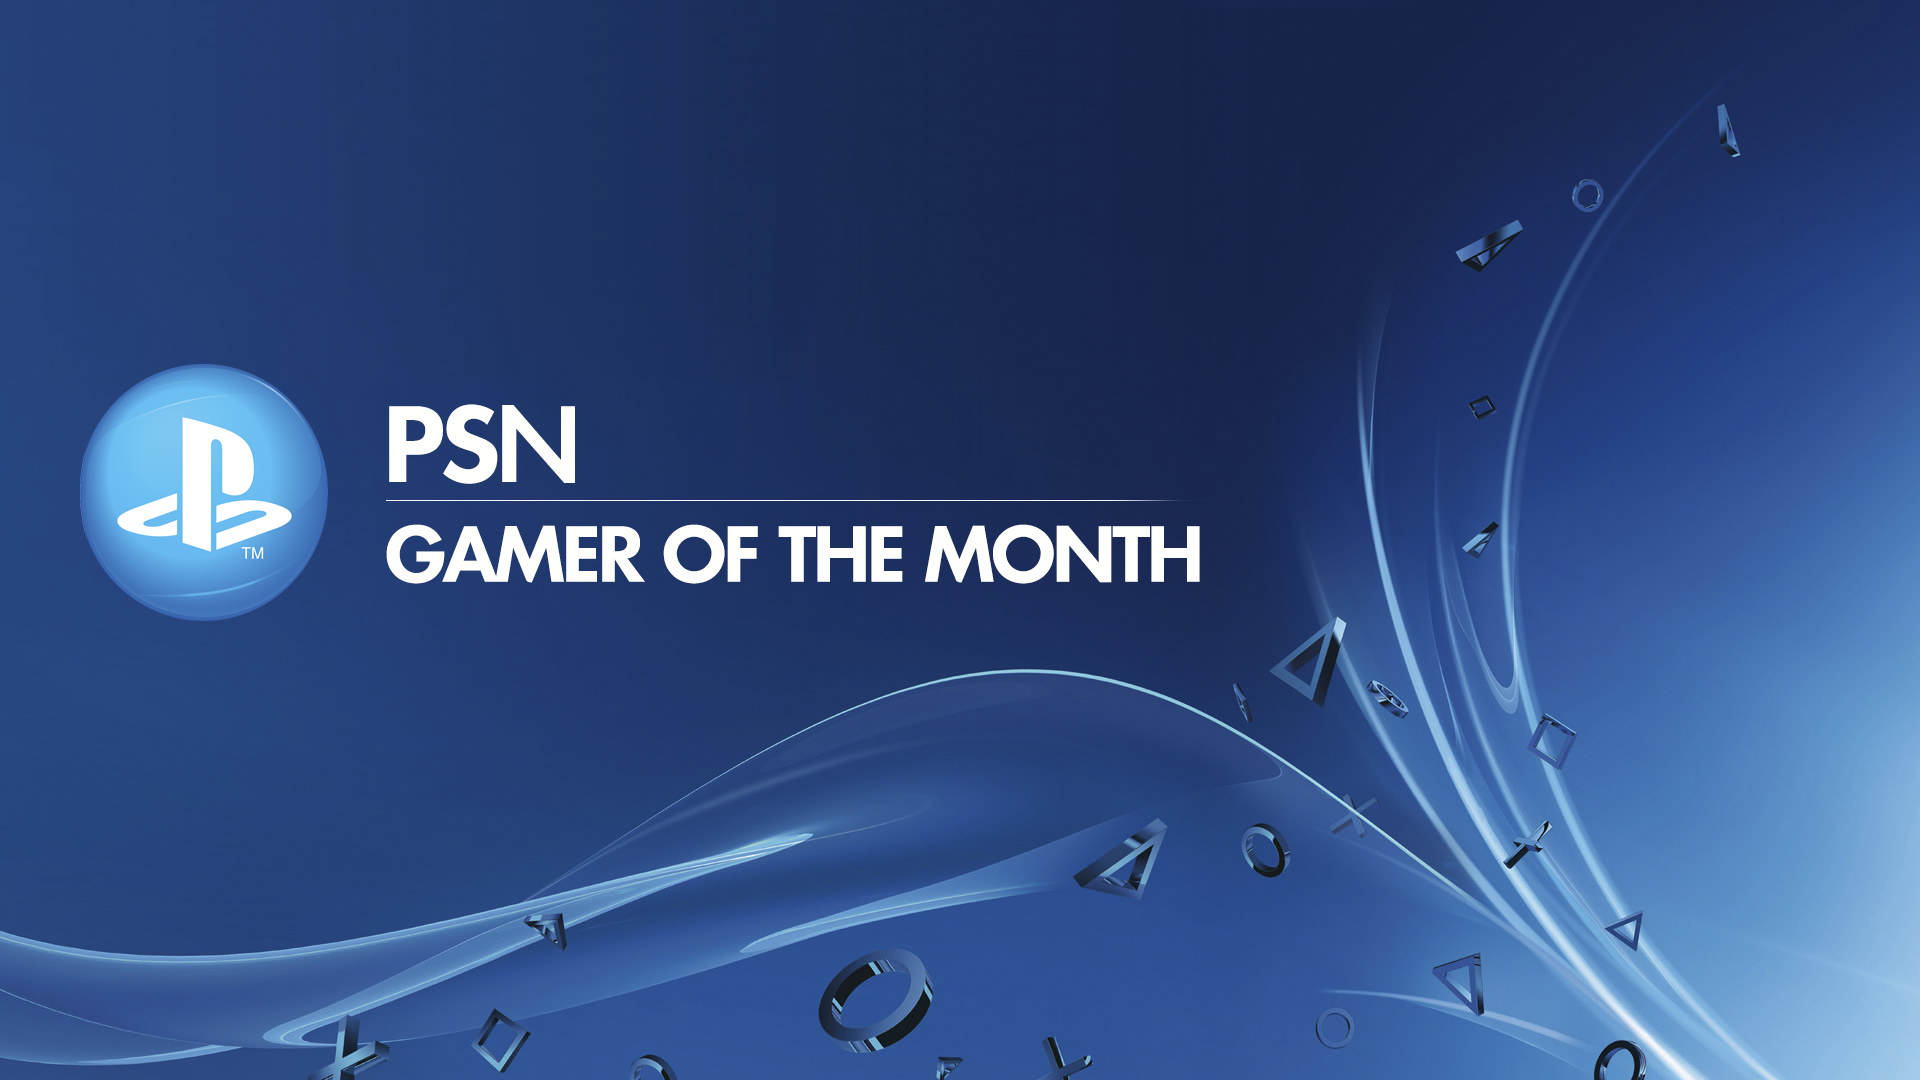 psn-gamer-of-the-month-2-3.jpg